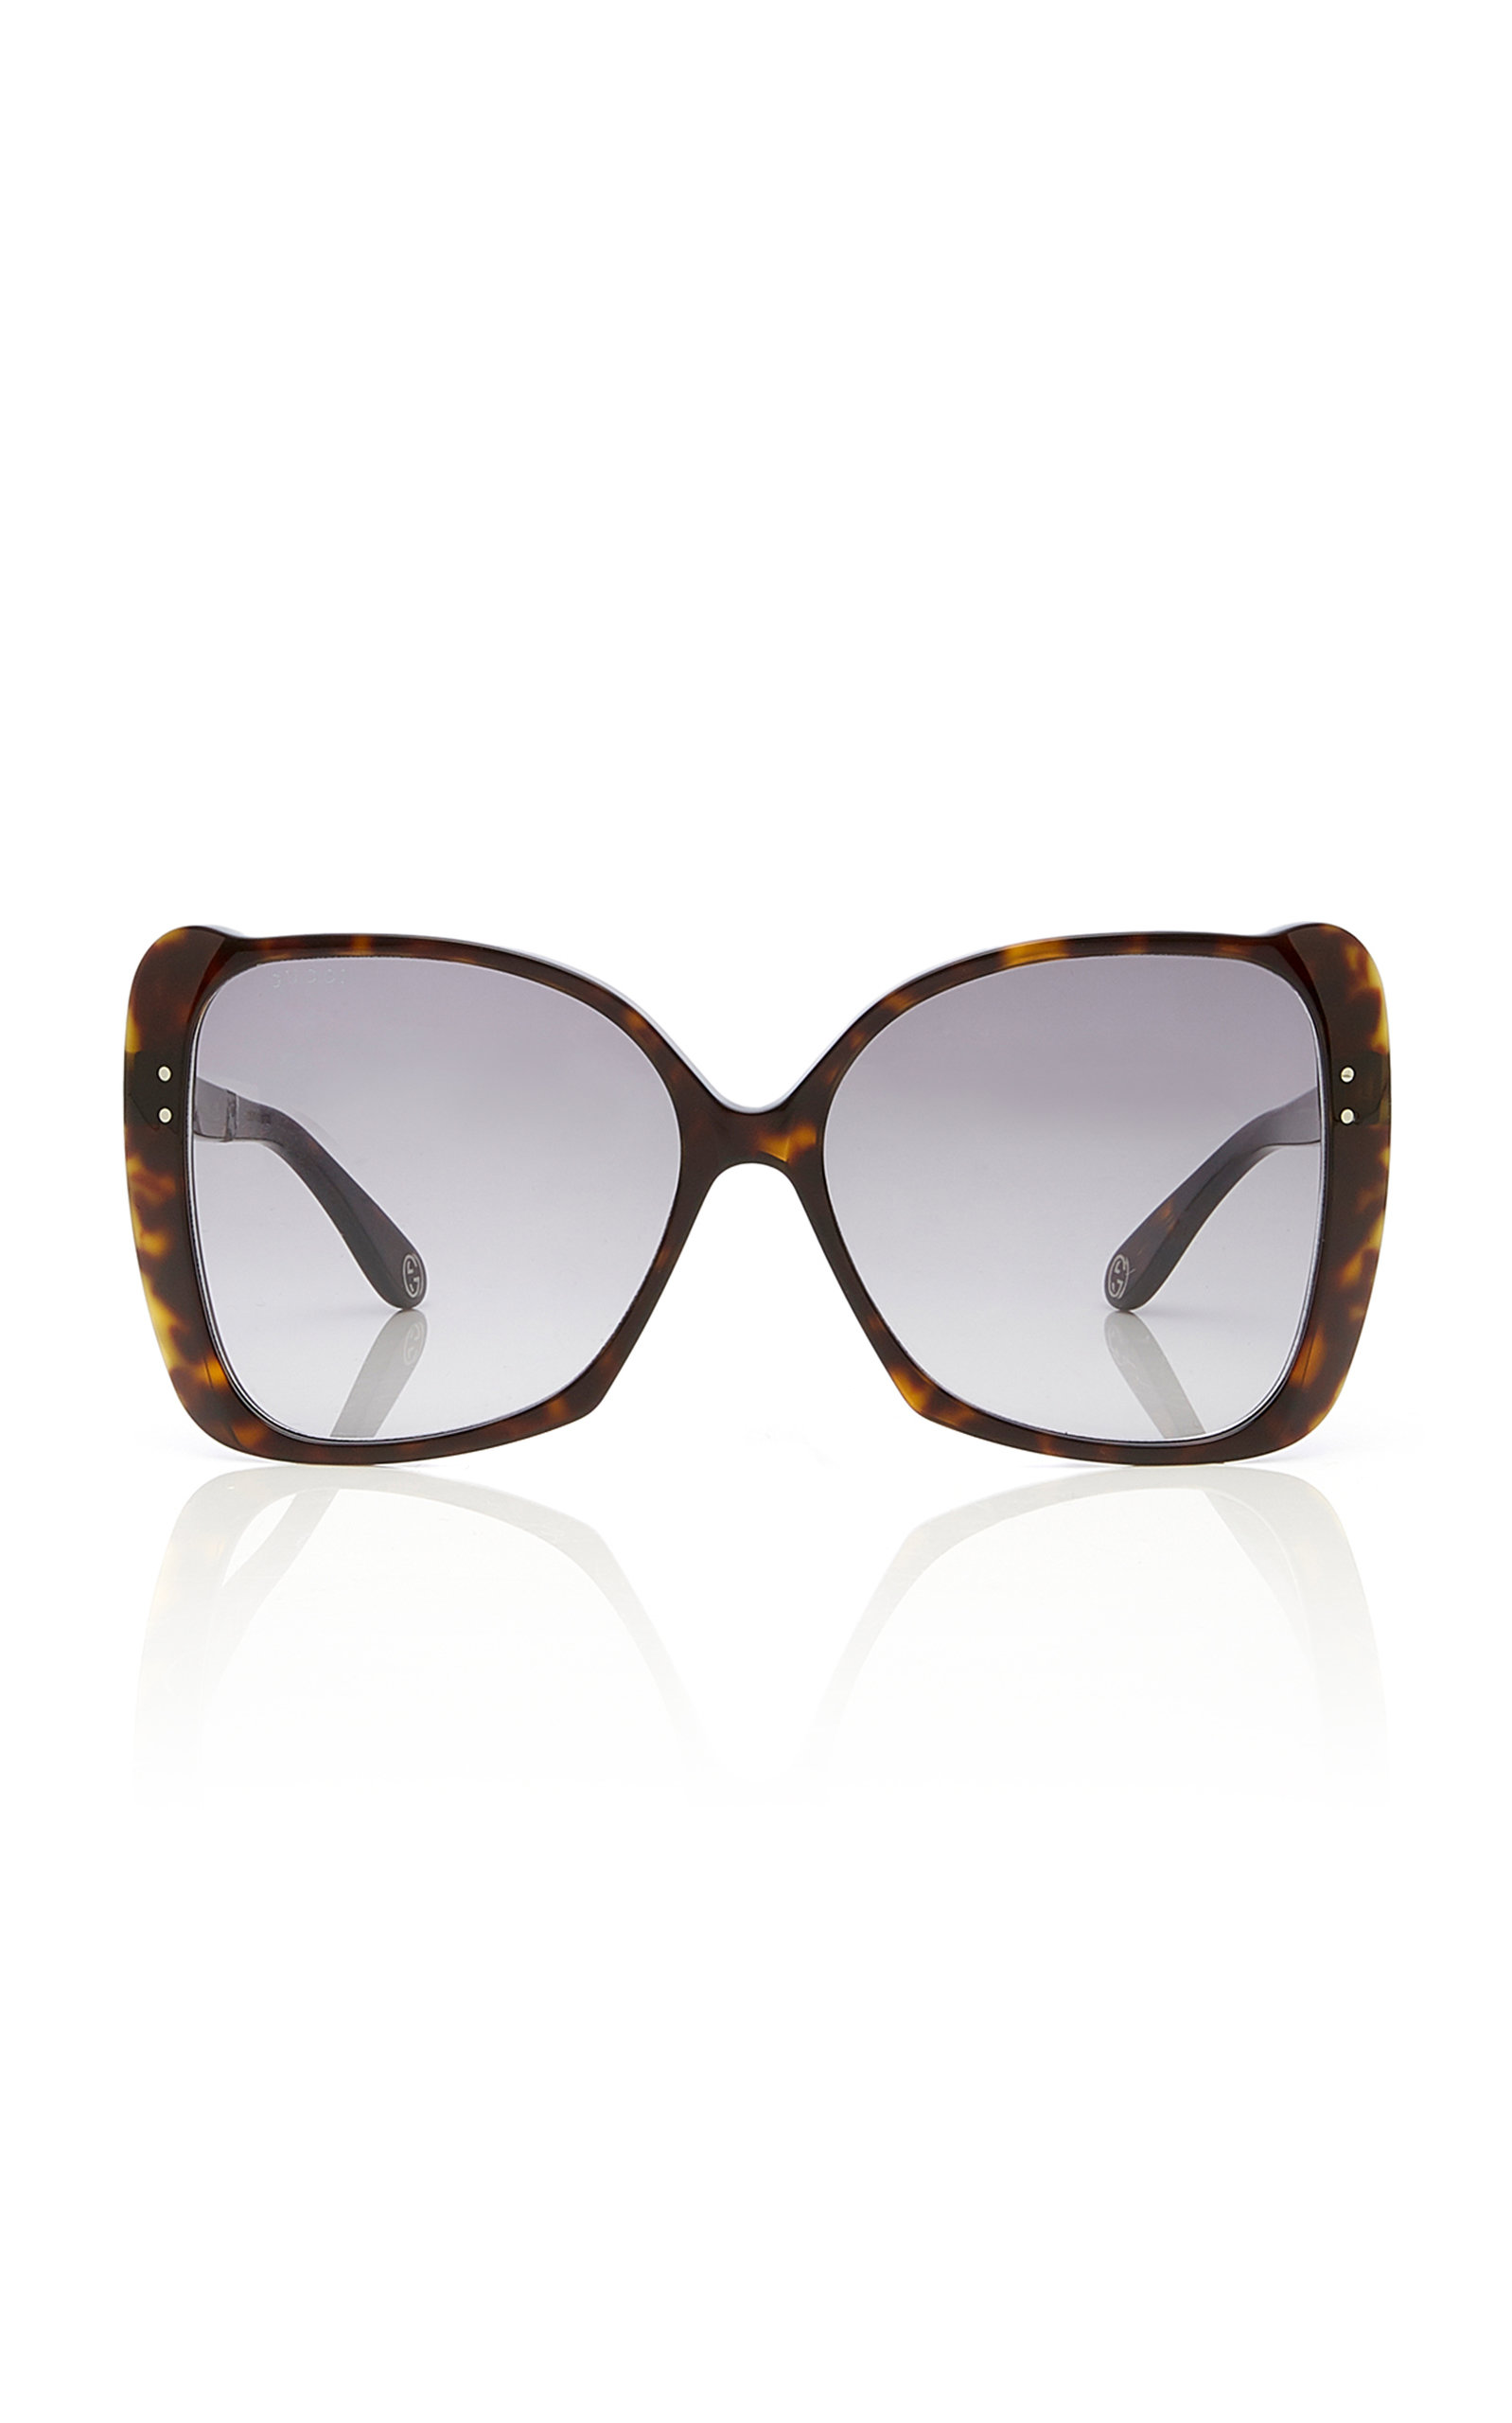 207c3892078 Gucci Sunglasses Butterfly-Frame Tortoiseshell Acetate Sunglasses. CLOSE.  Loading